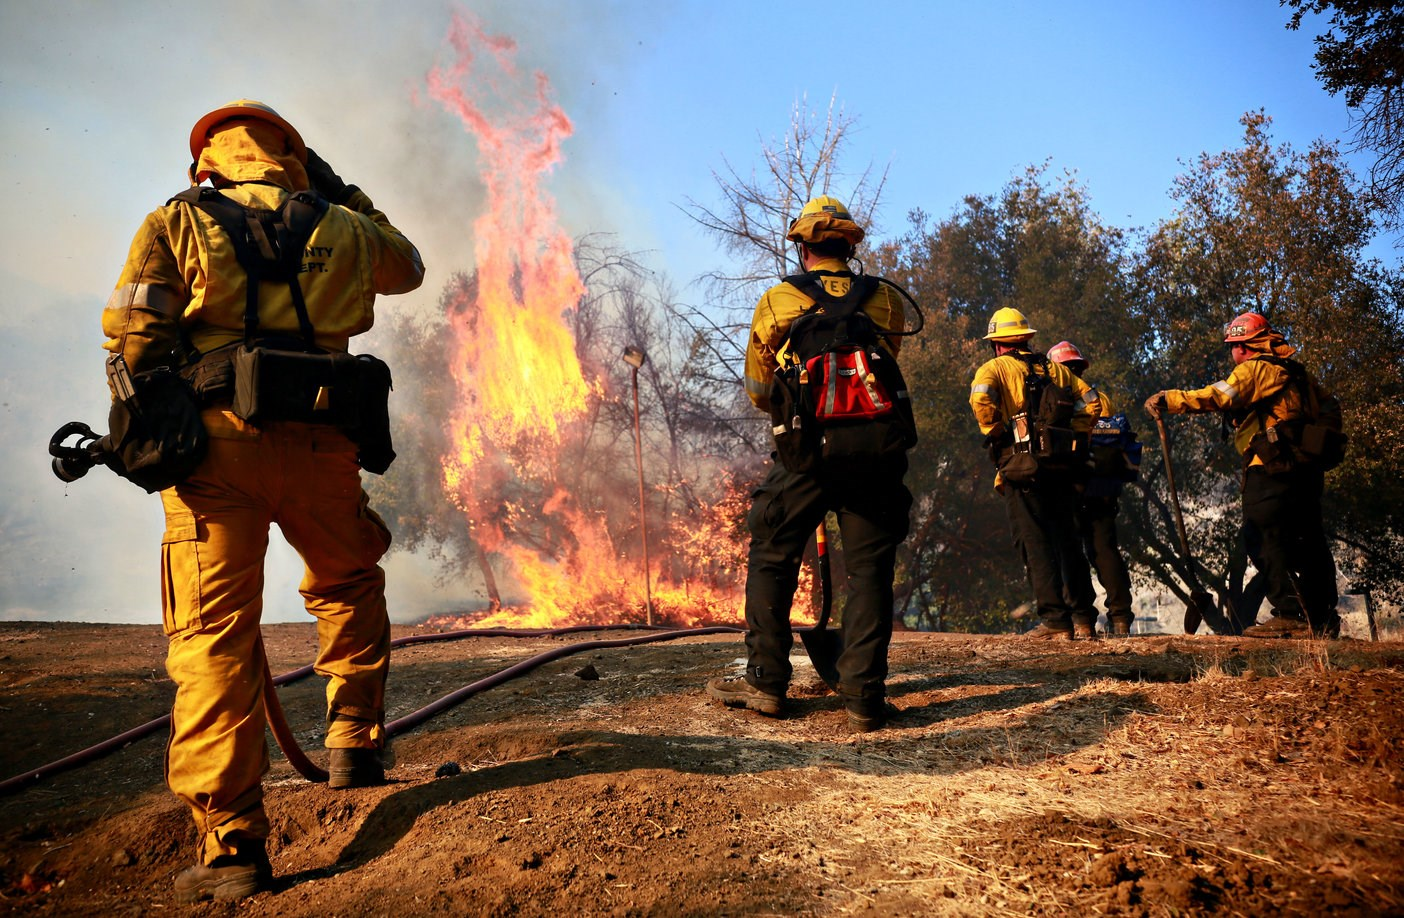 Wildfire Respiratory Protection and Preventing Breathing Problems